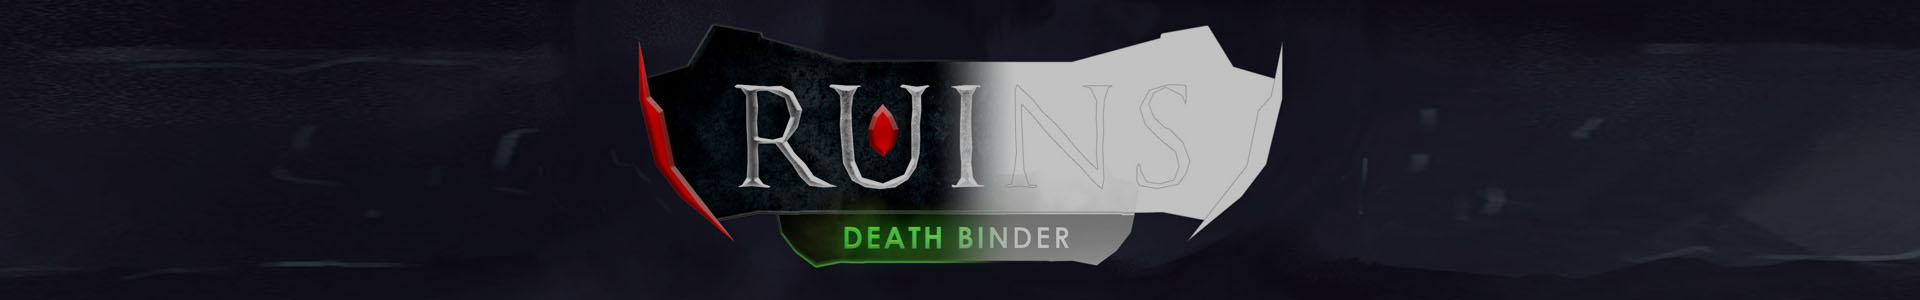 Dev log #3 Ruins Death Binder